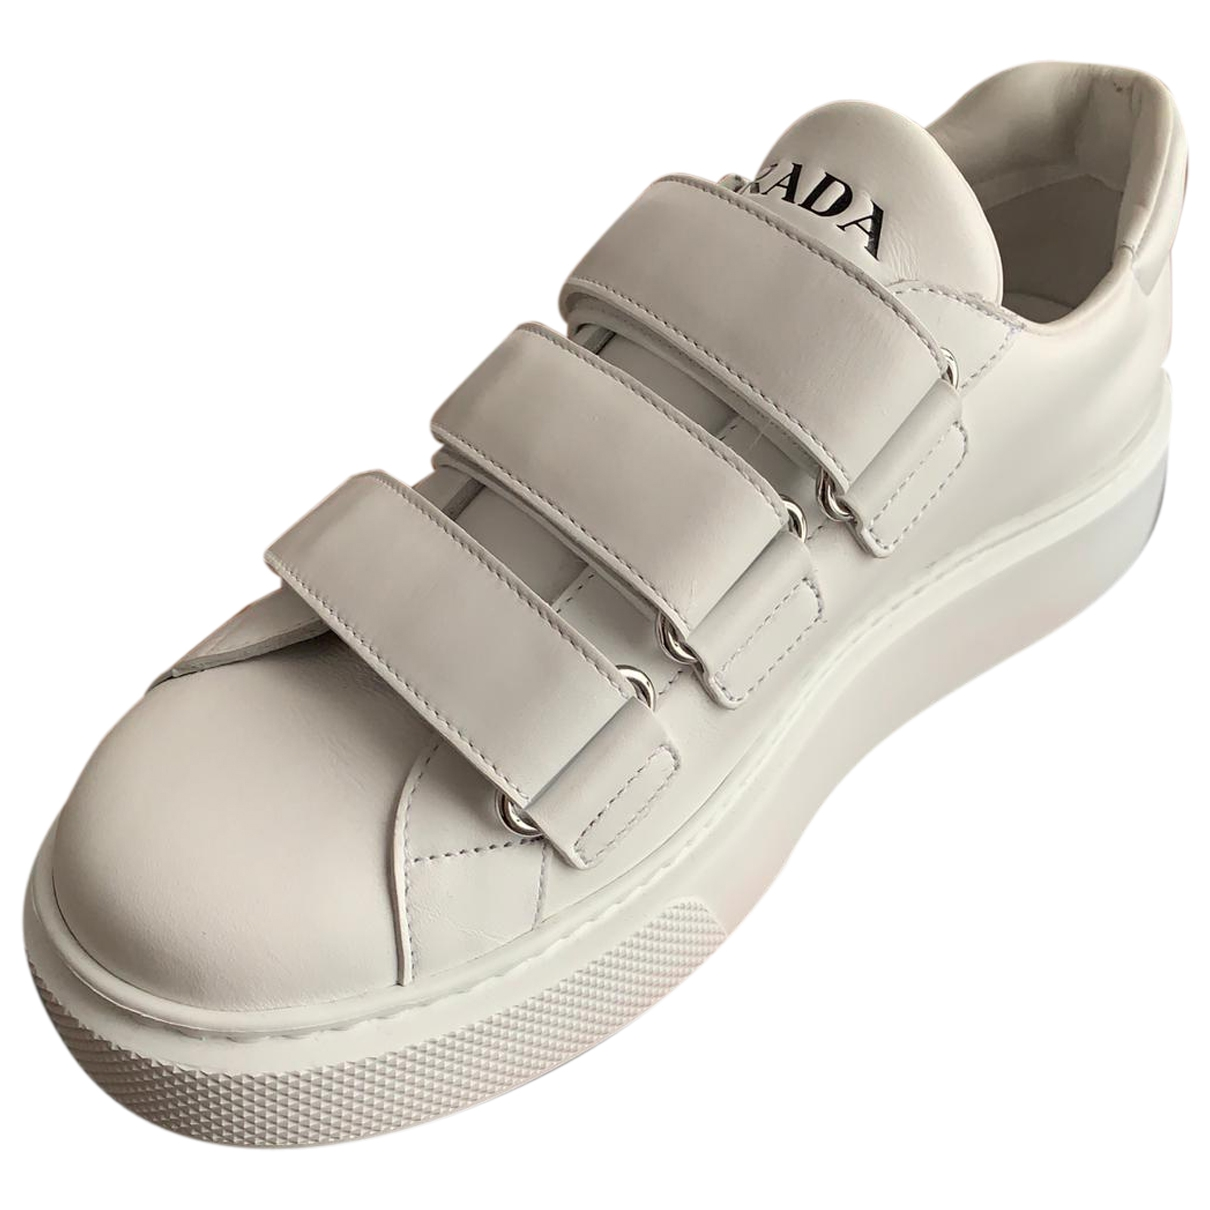 Prada \N Sneakers in  Weiss Leder